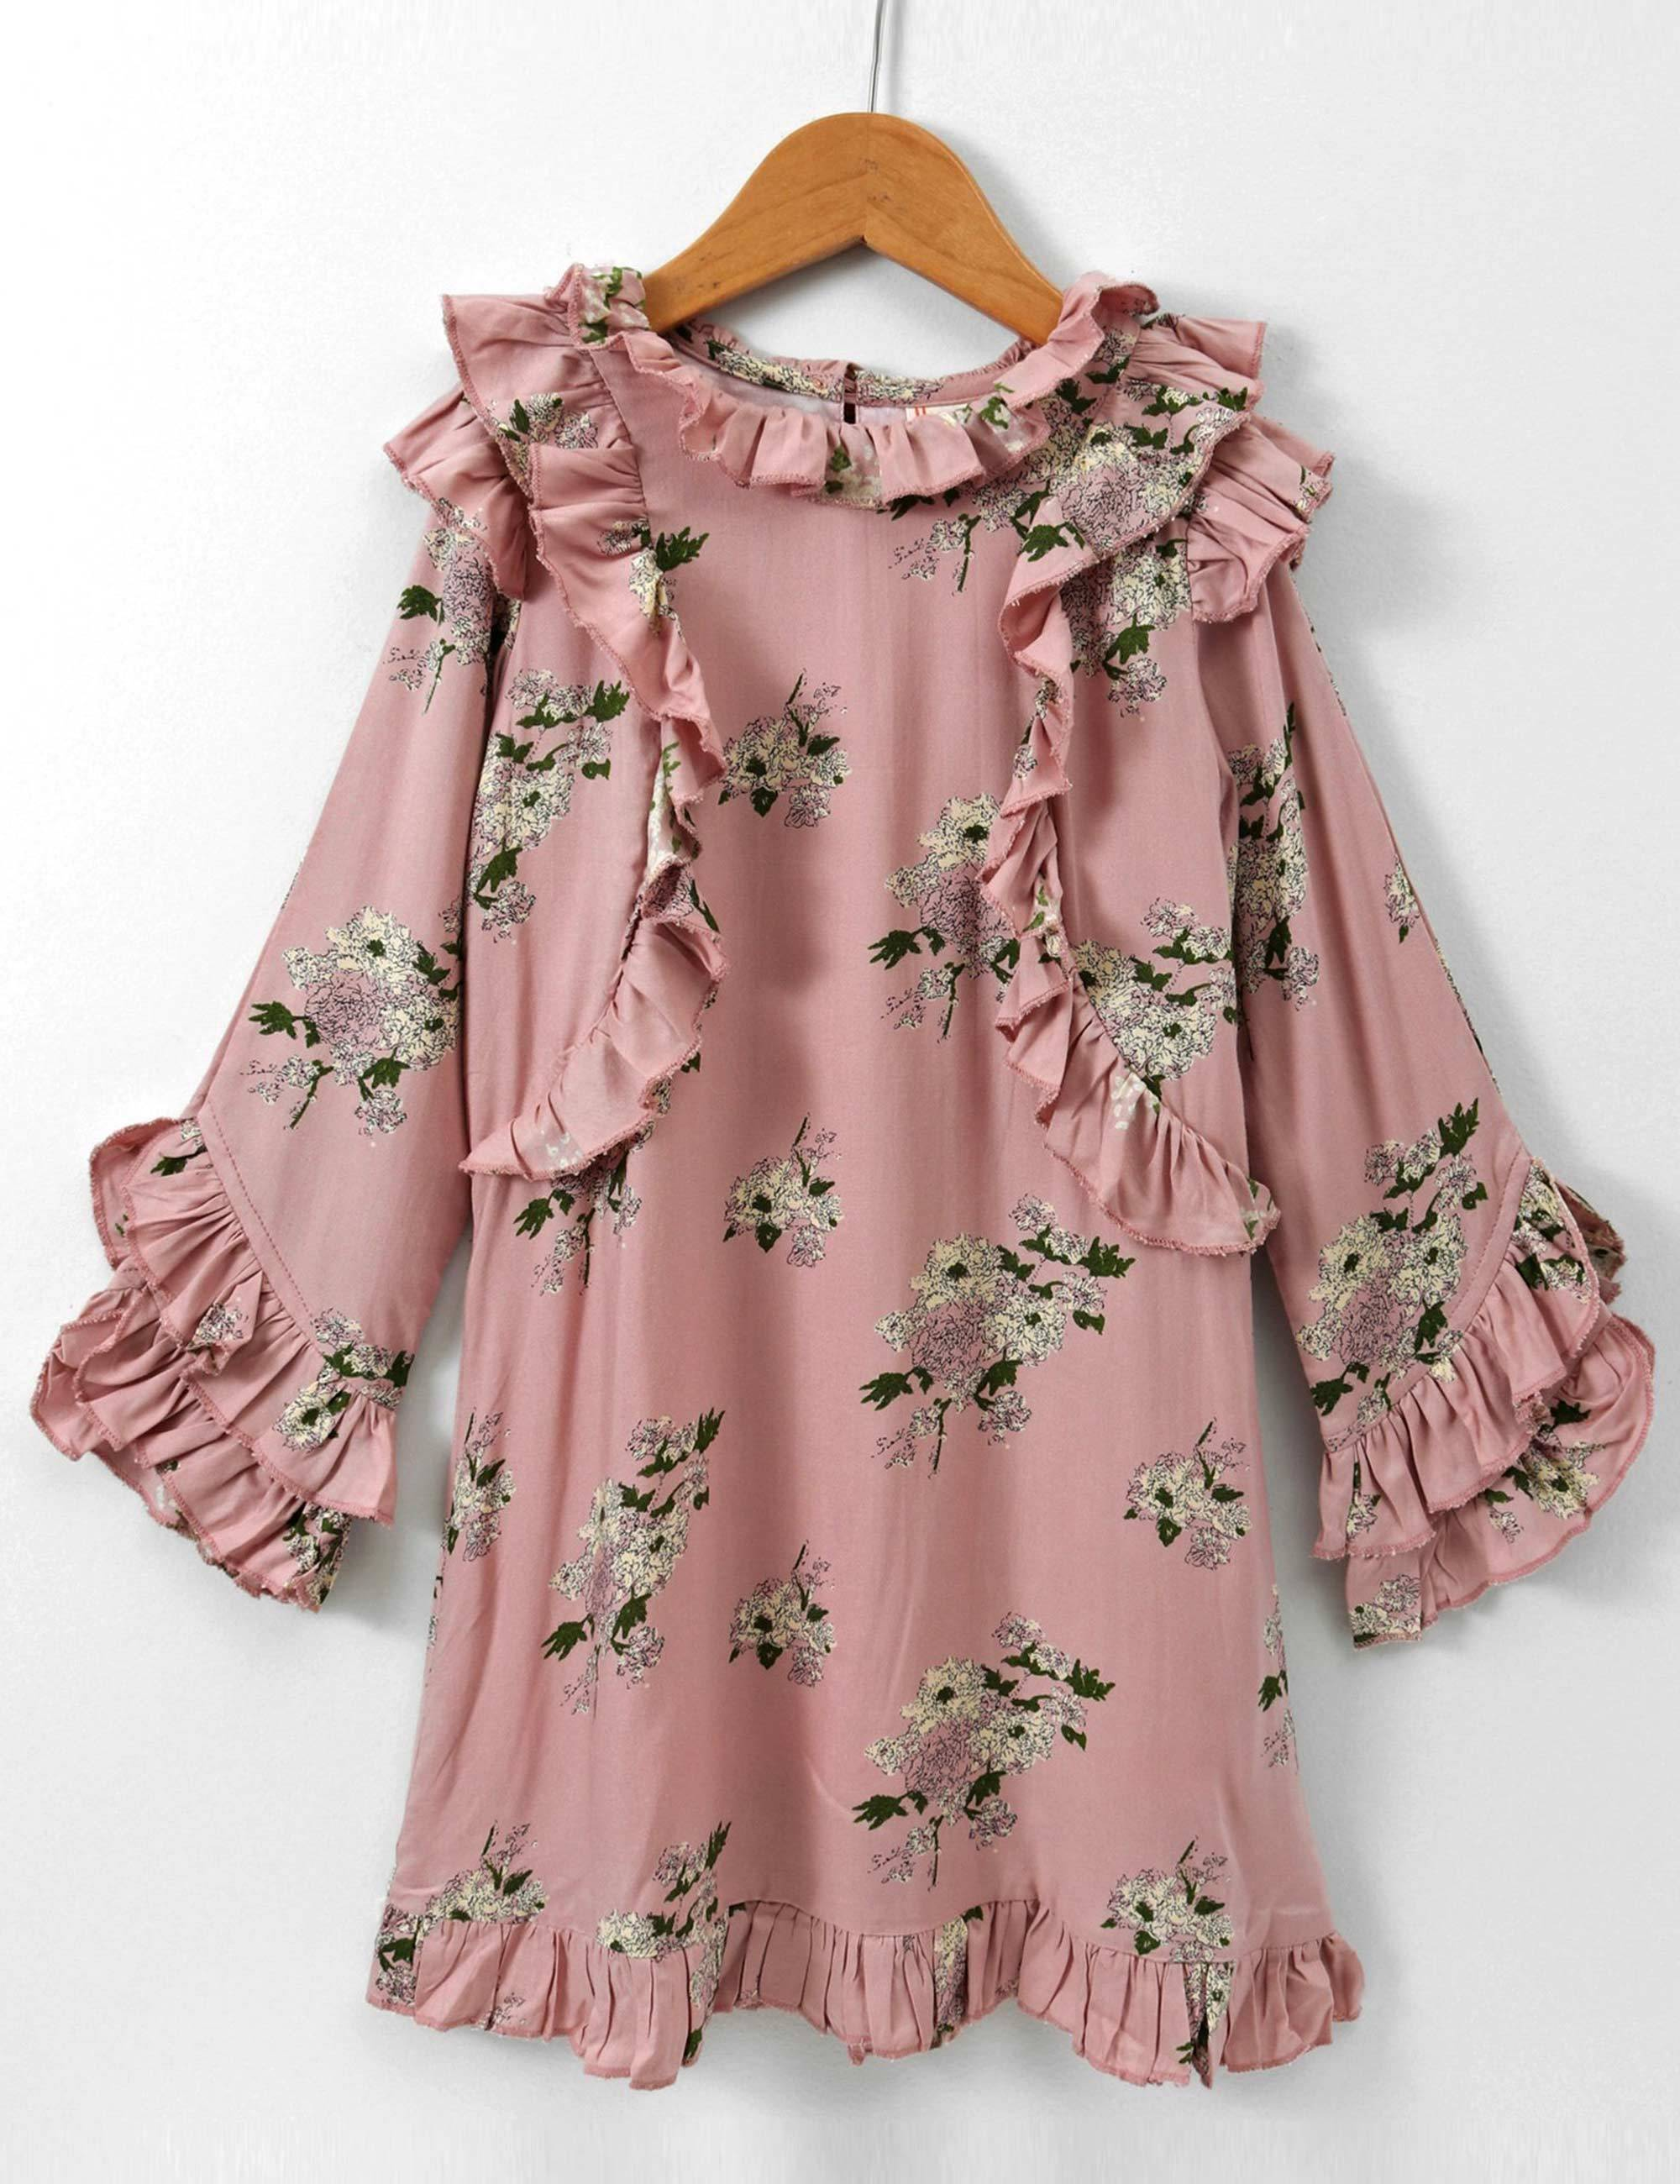 Full Sleeves Dress with Ruffles Floras